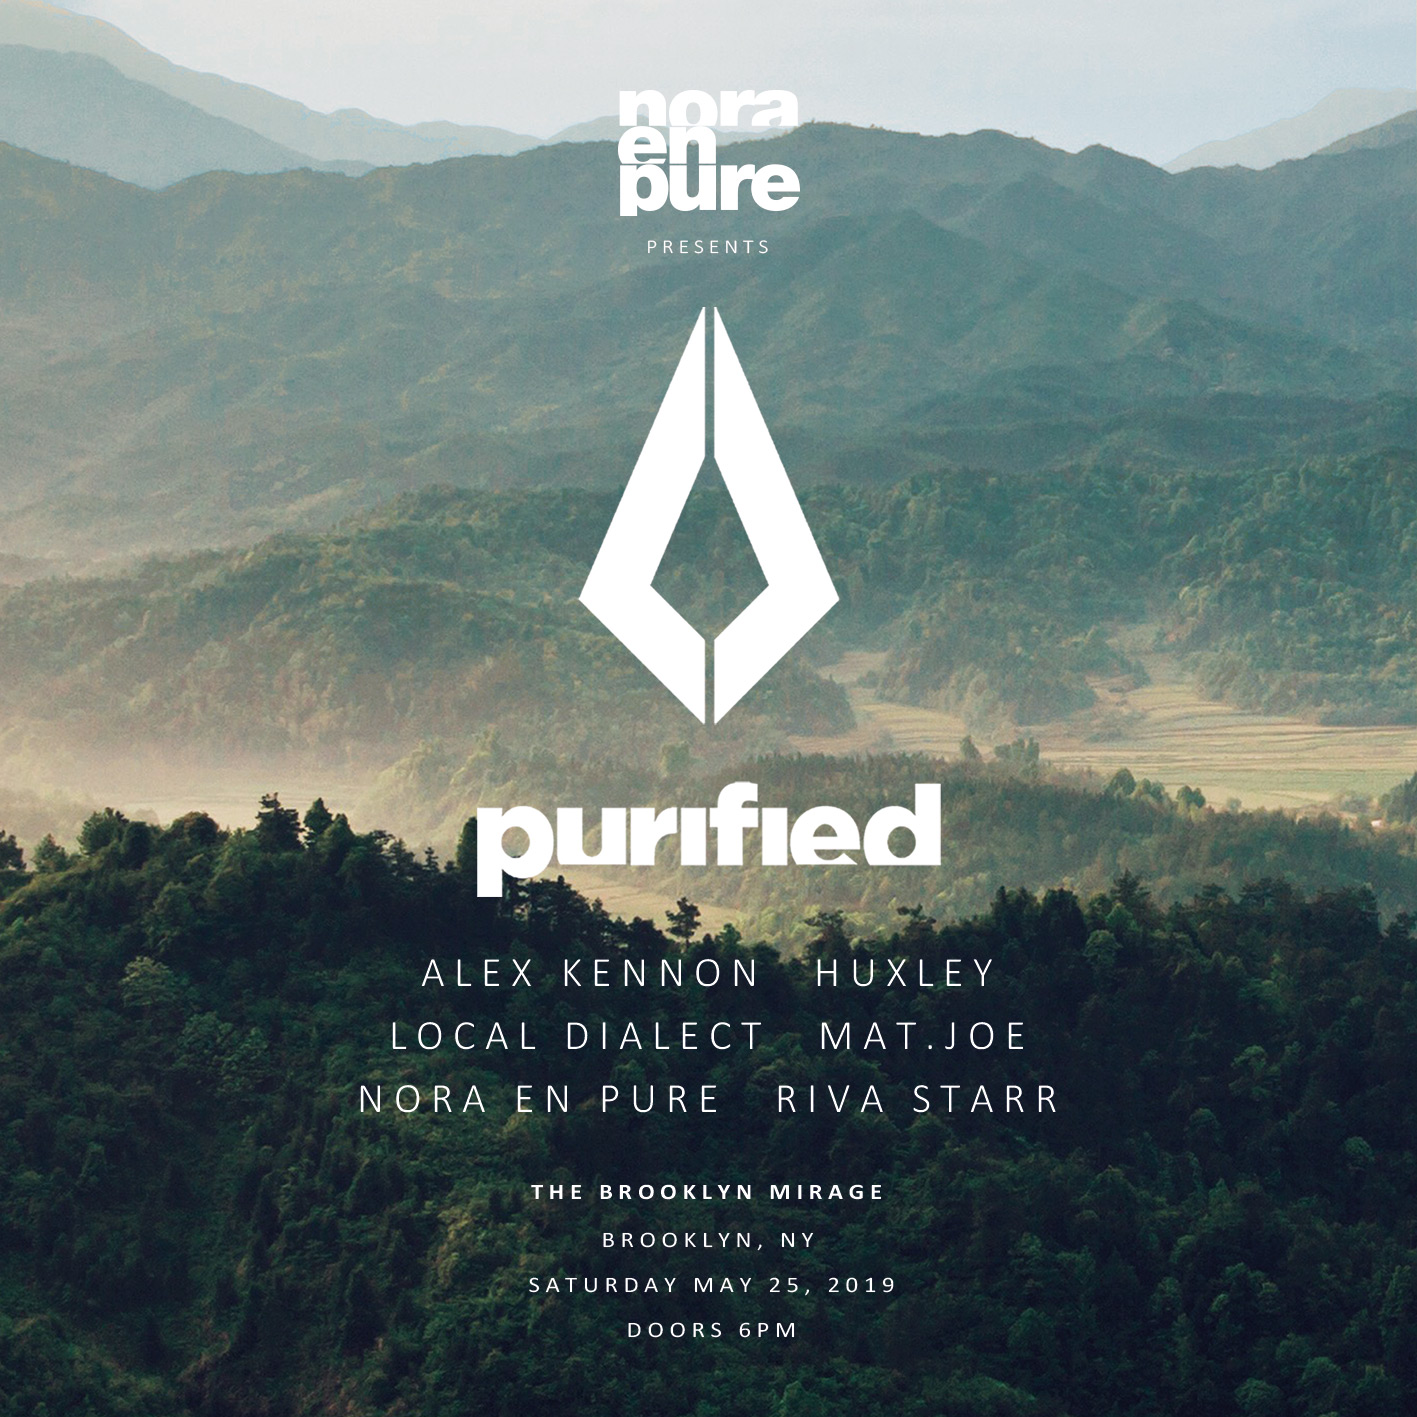 Nora En Pure Presents: Purified at The Brooklyn Mirage